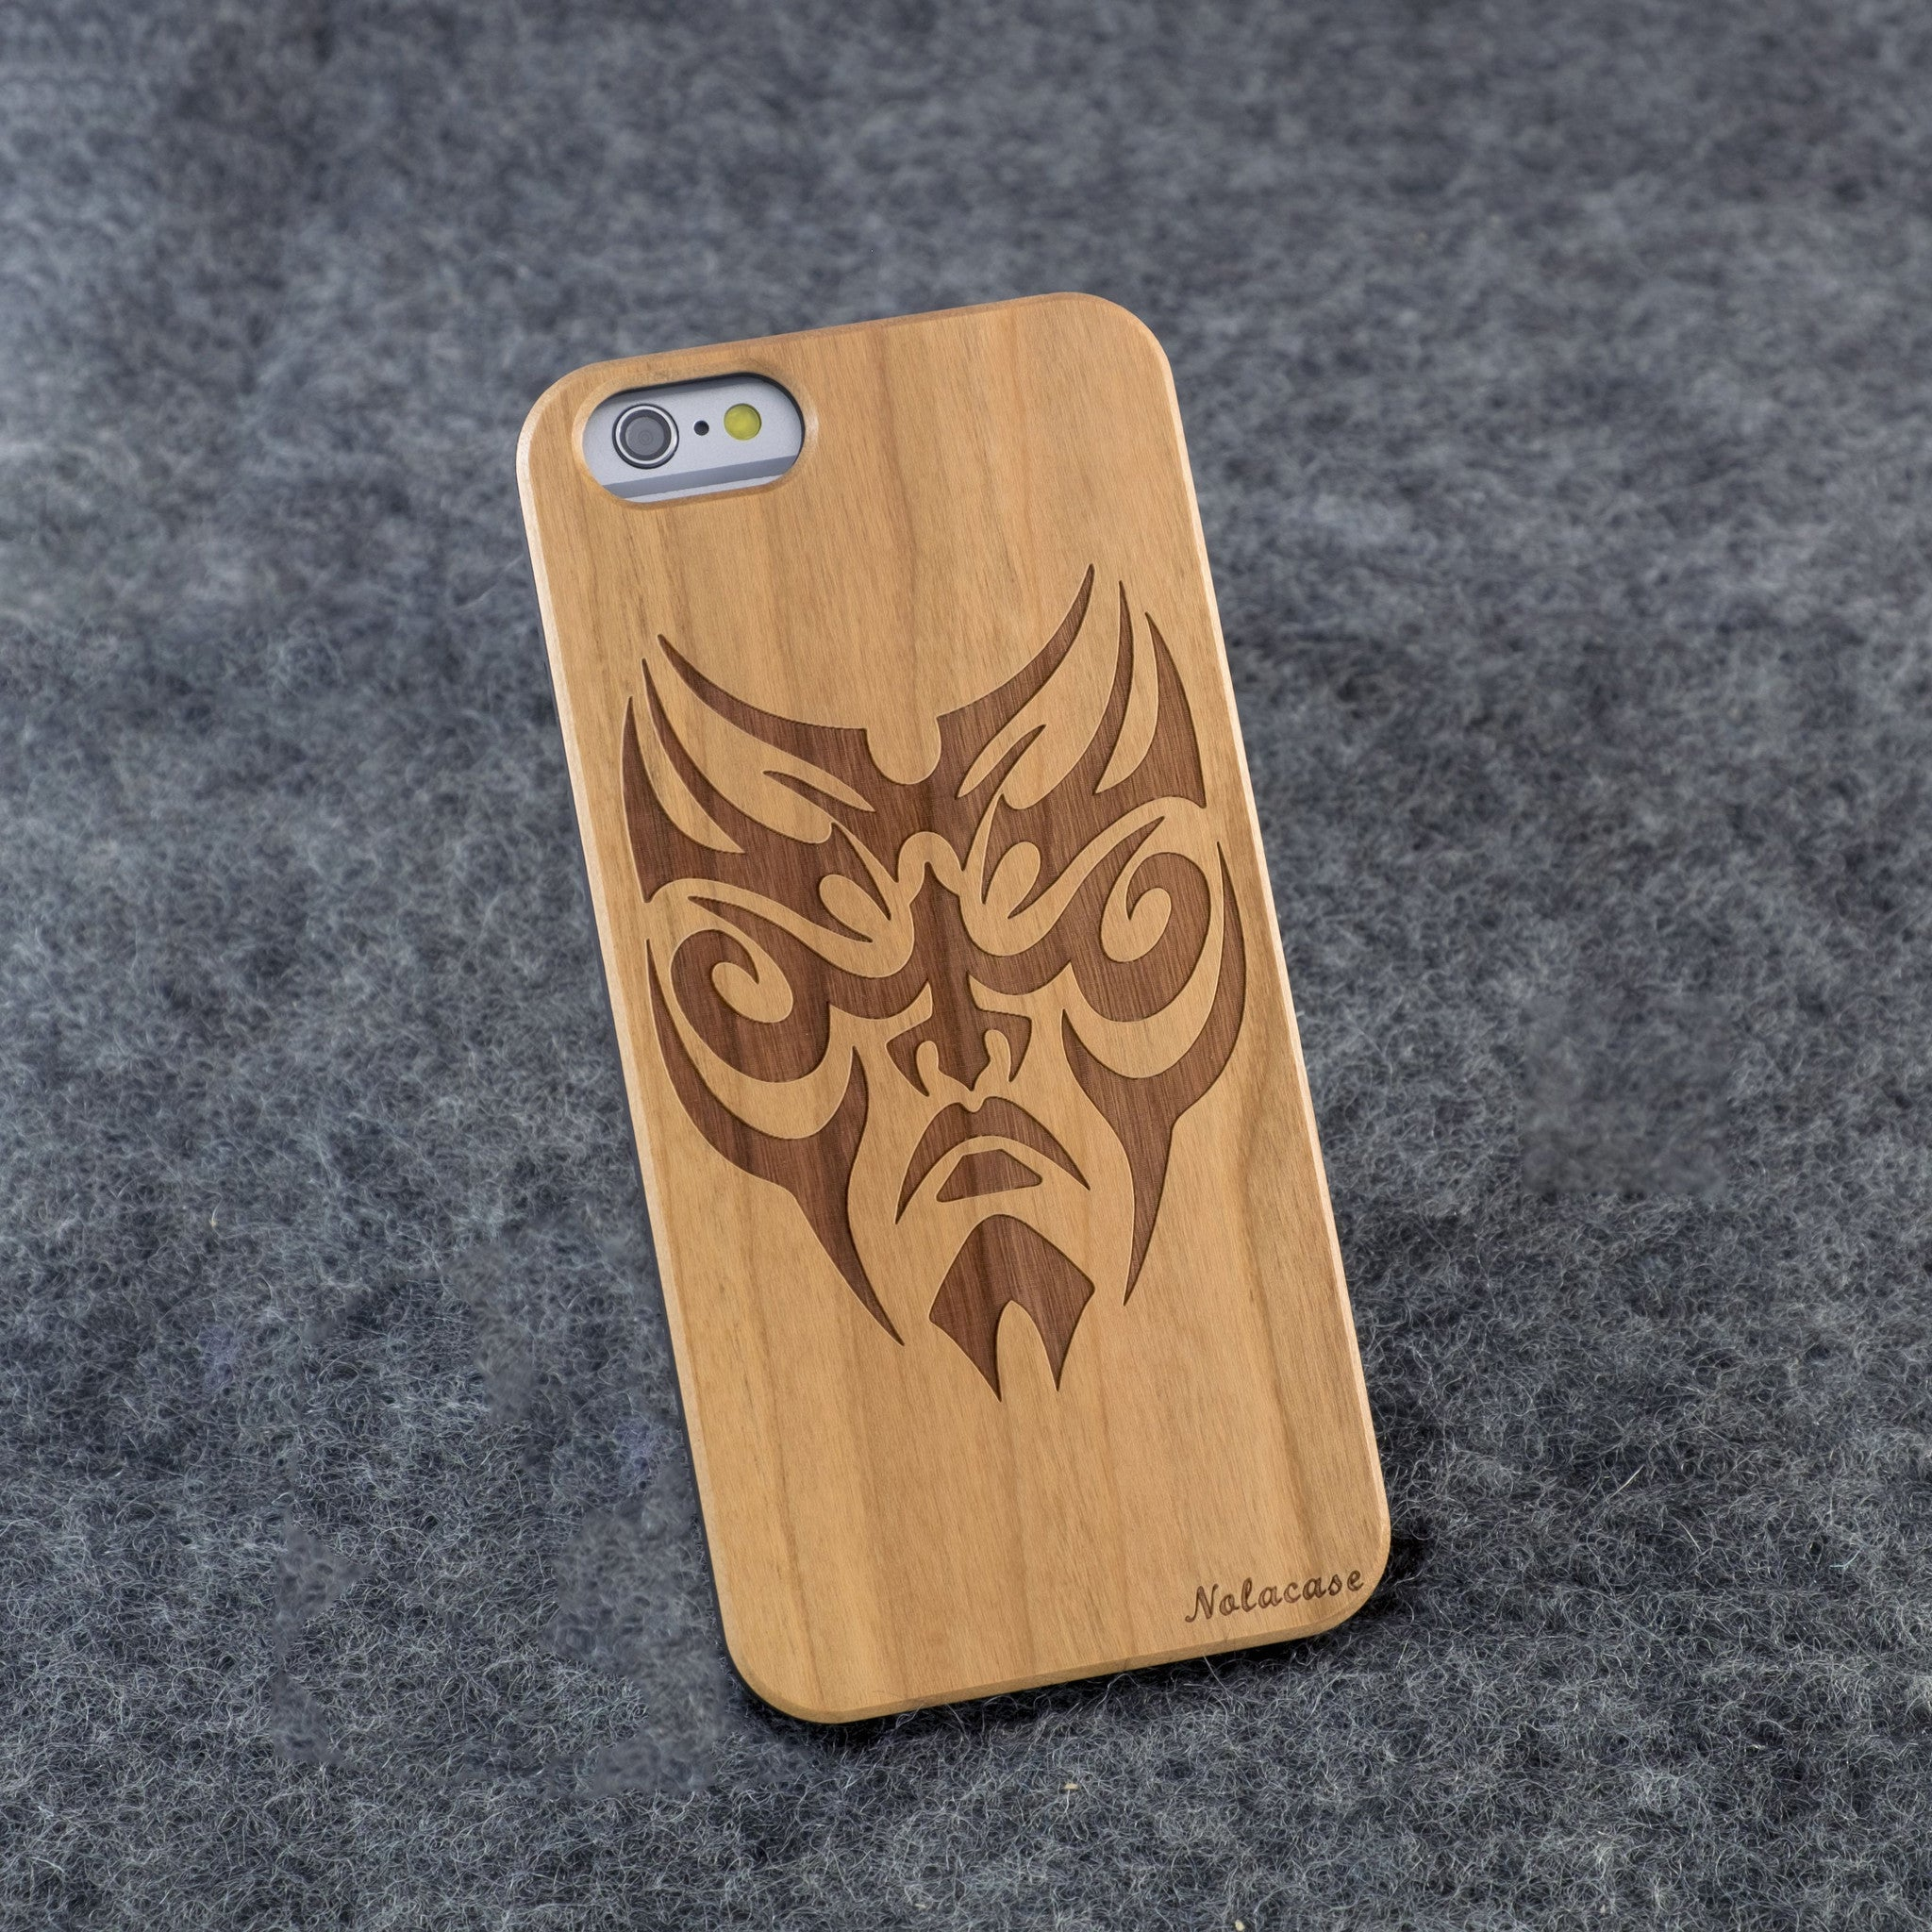 iPhone 6 / 6S Wolverine Slim Wood Case - NOLACASE